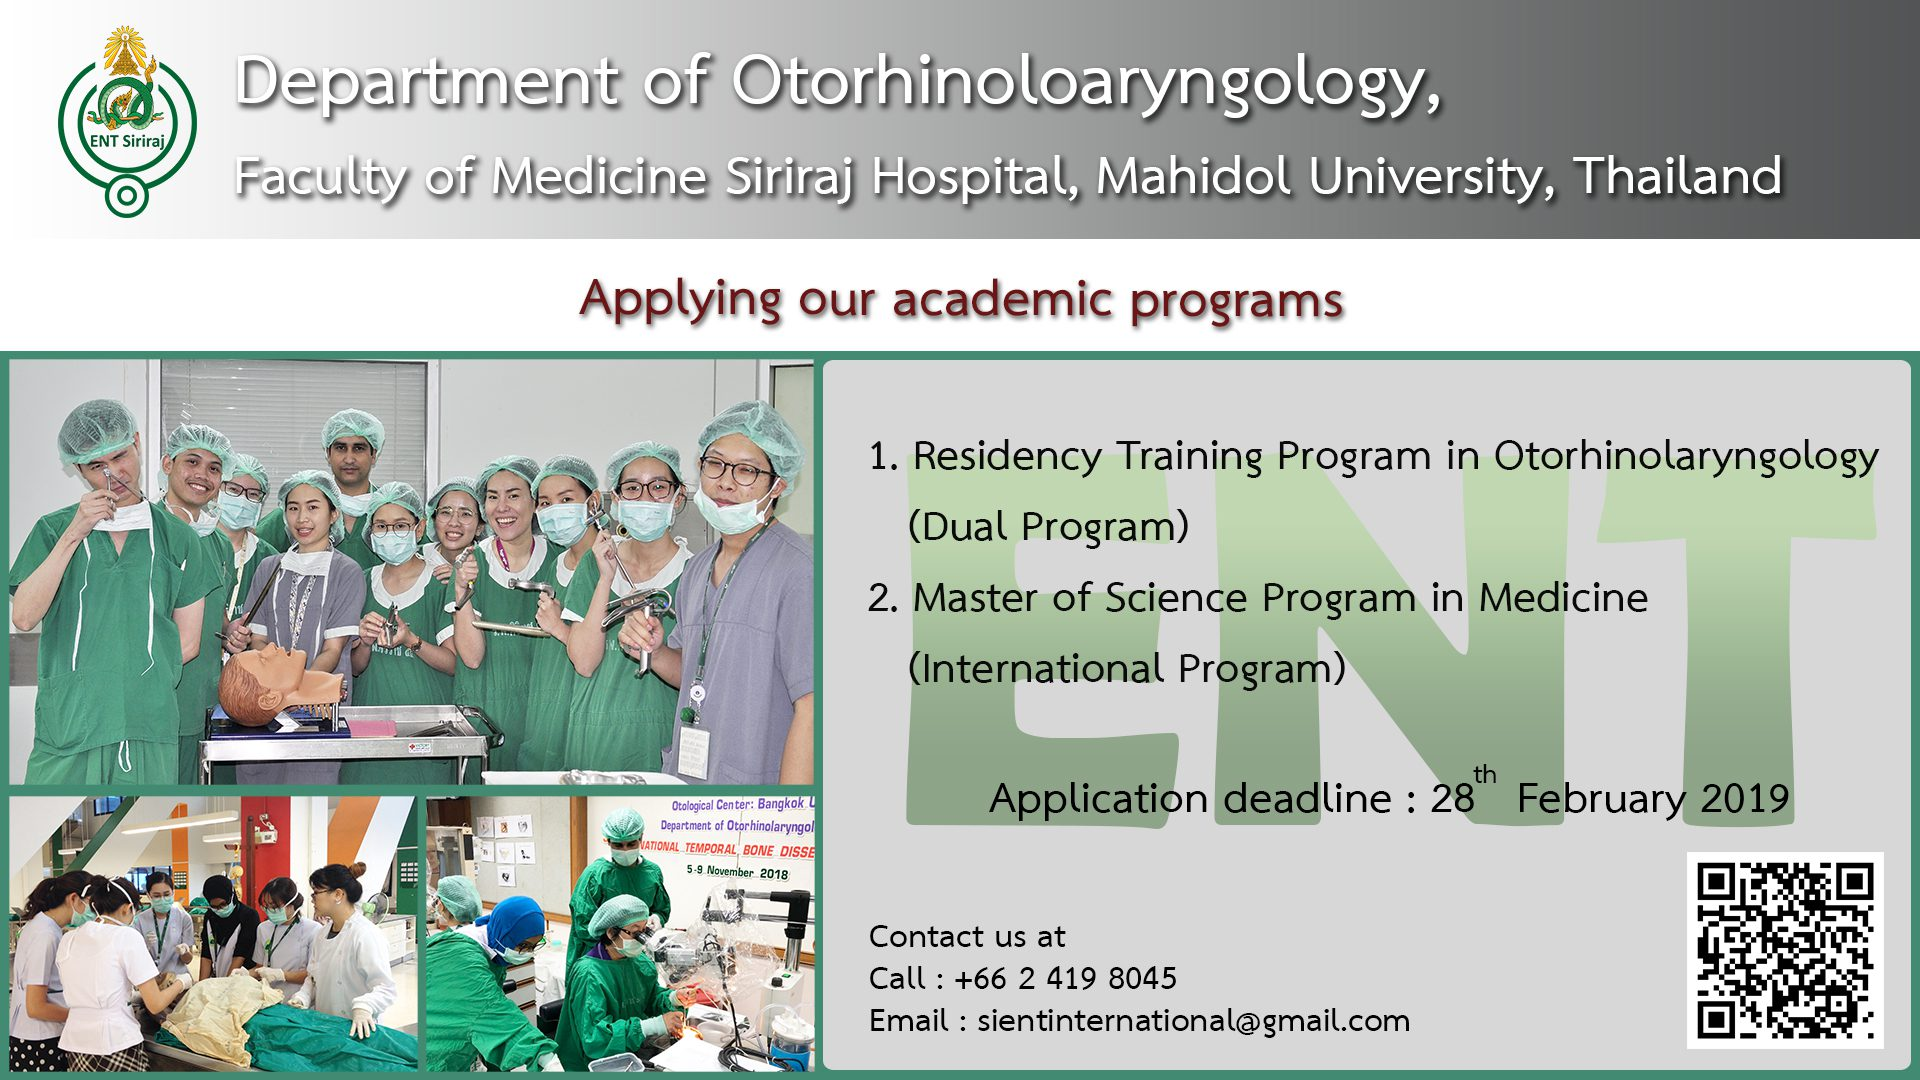 Department of Otorhinolaryngology's Announcement for the 2019 Academic Programs